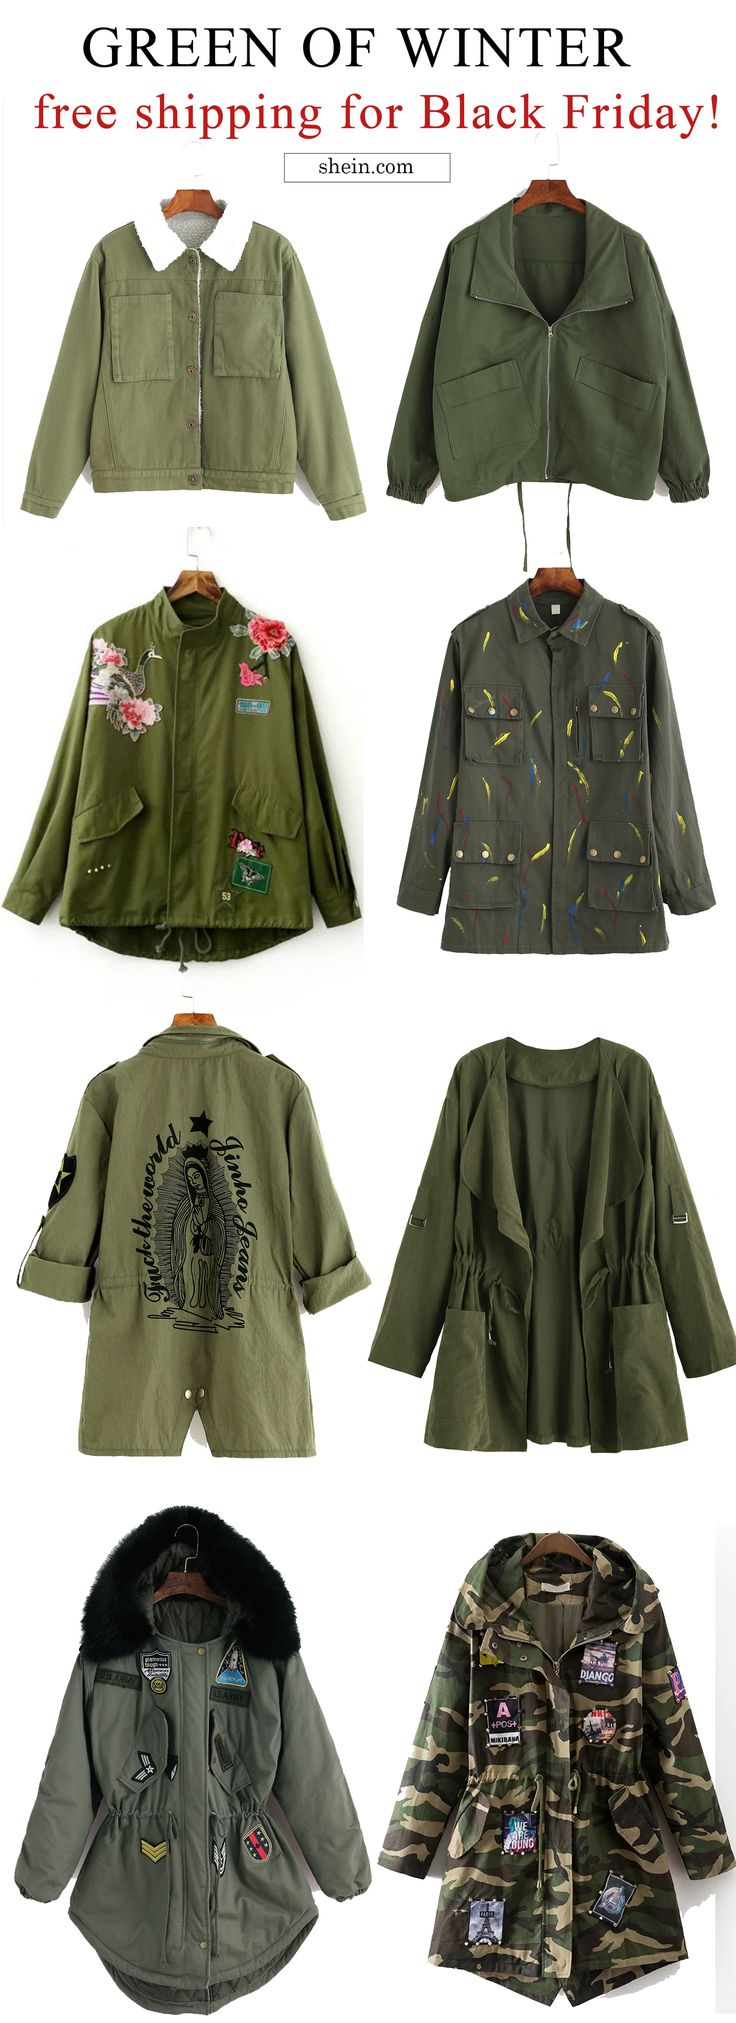 Green outwear collect. Free shipping & 40% off at shein.com.